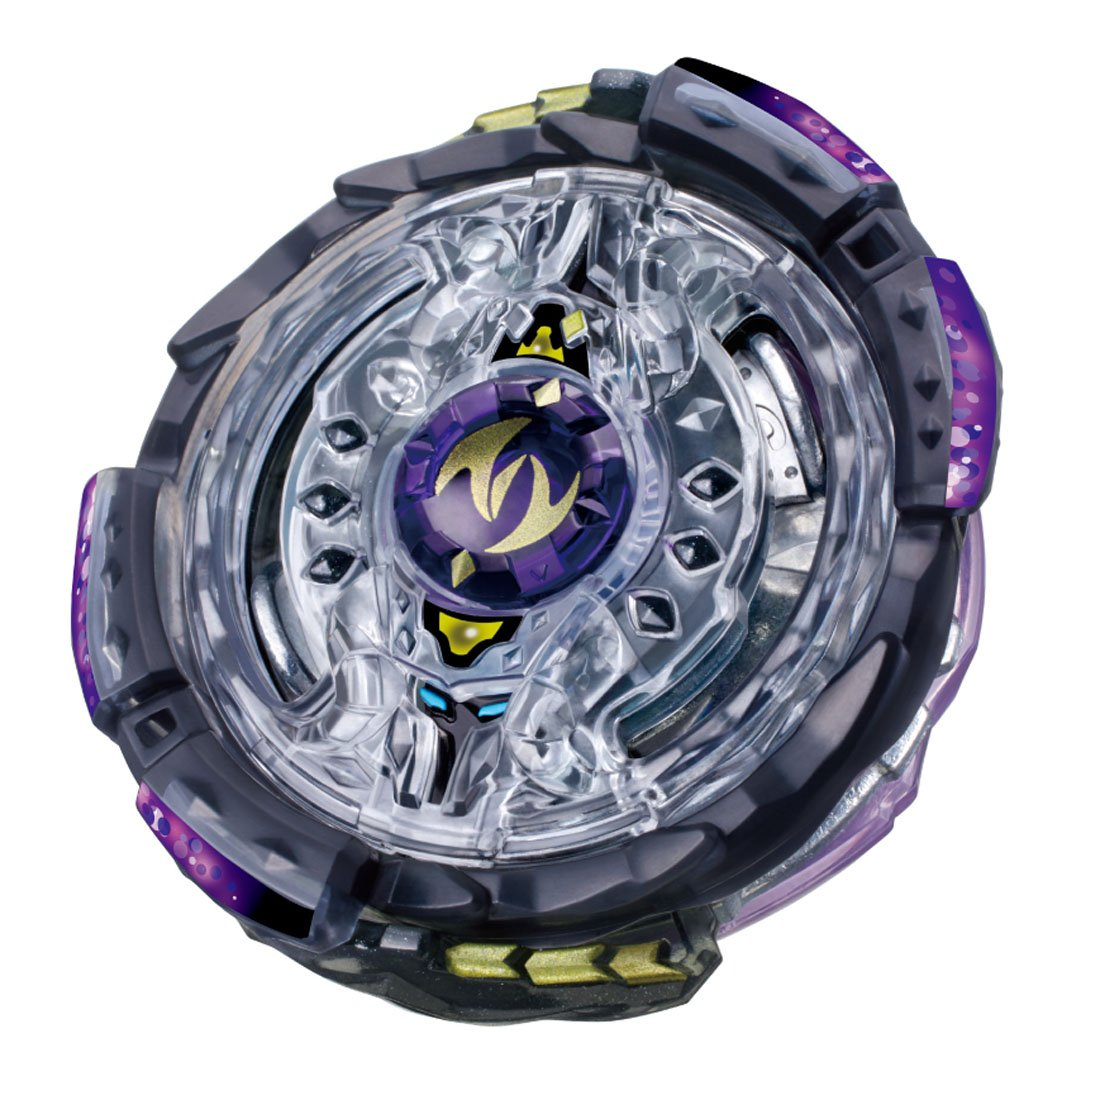 Takara Tomy B 102 Takaratomy Beyblade Burst Twin Nemesis.3H.Ui Attack Booster Top Pack Spinning